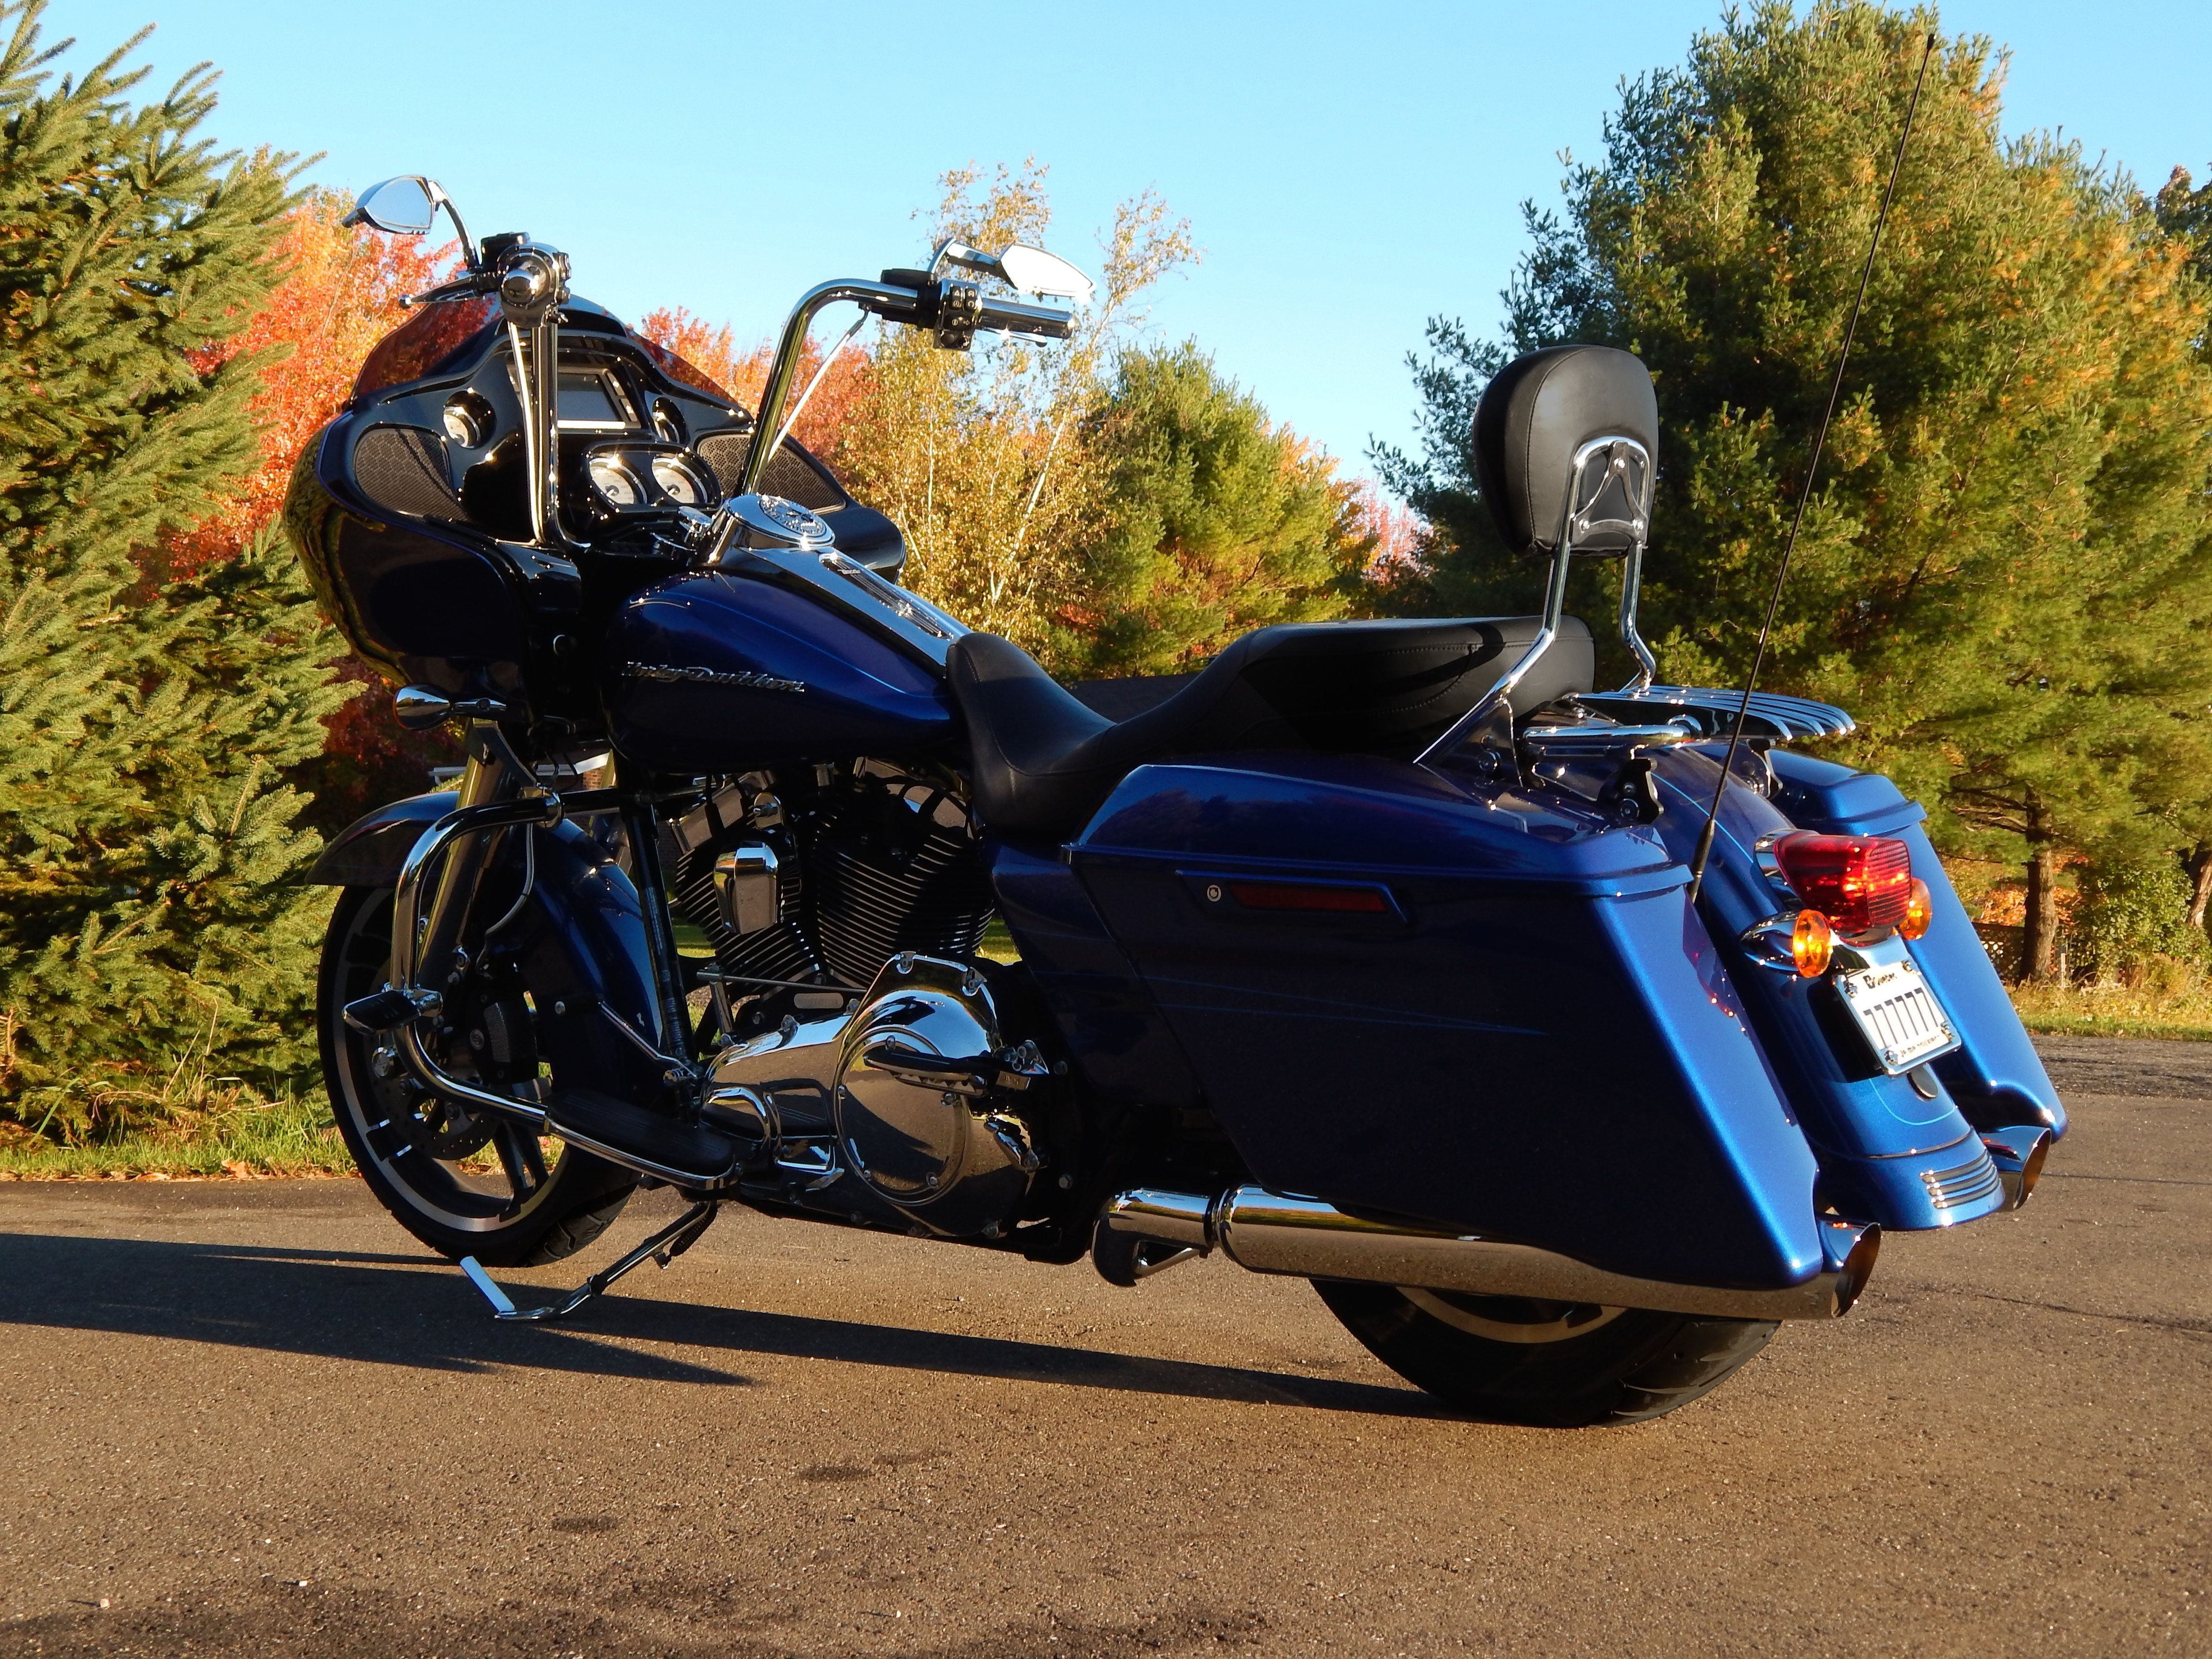 My 2015 road glide special with 14 apes tallboy seat chrome fork and